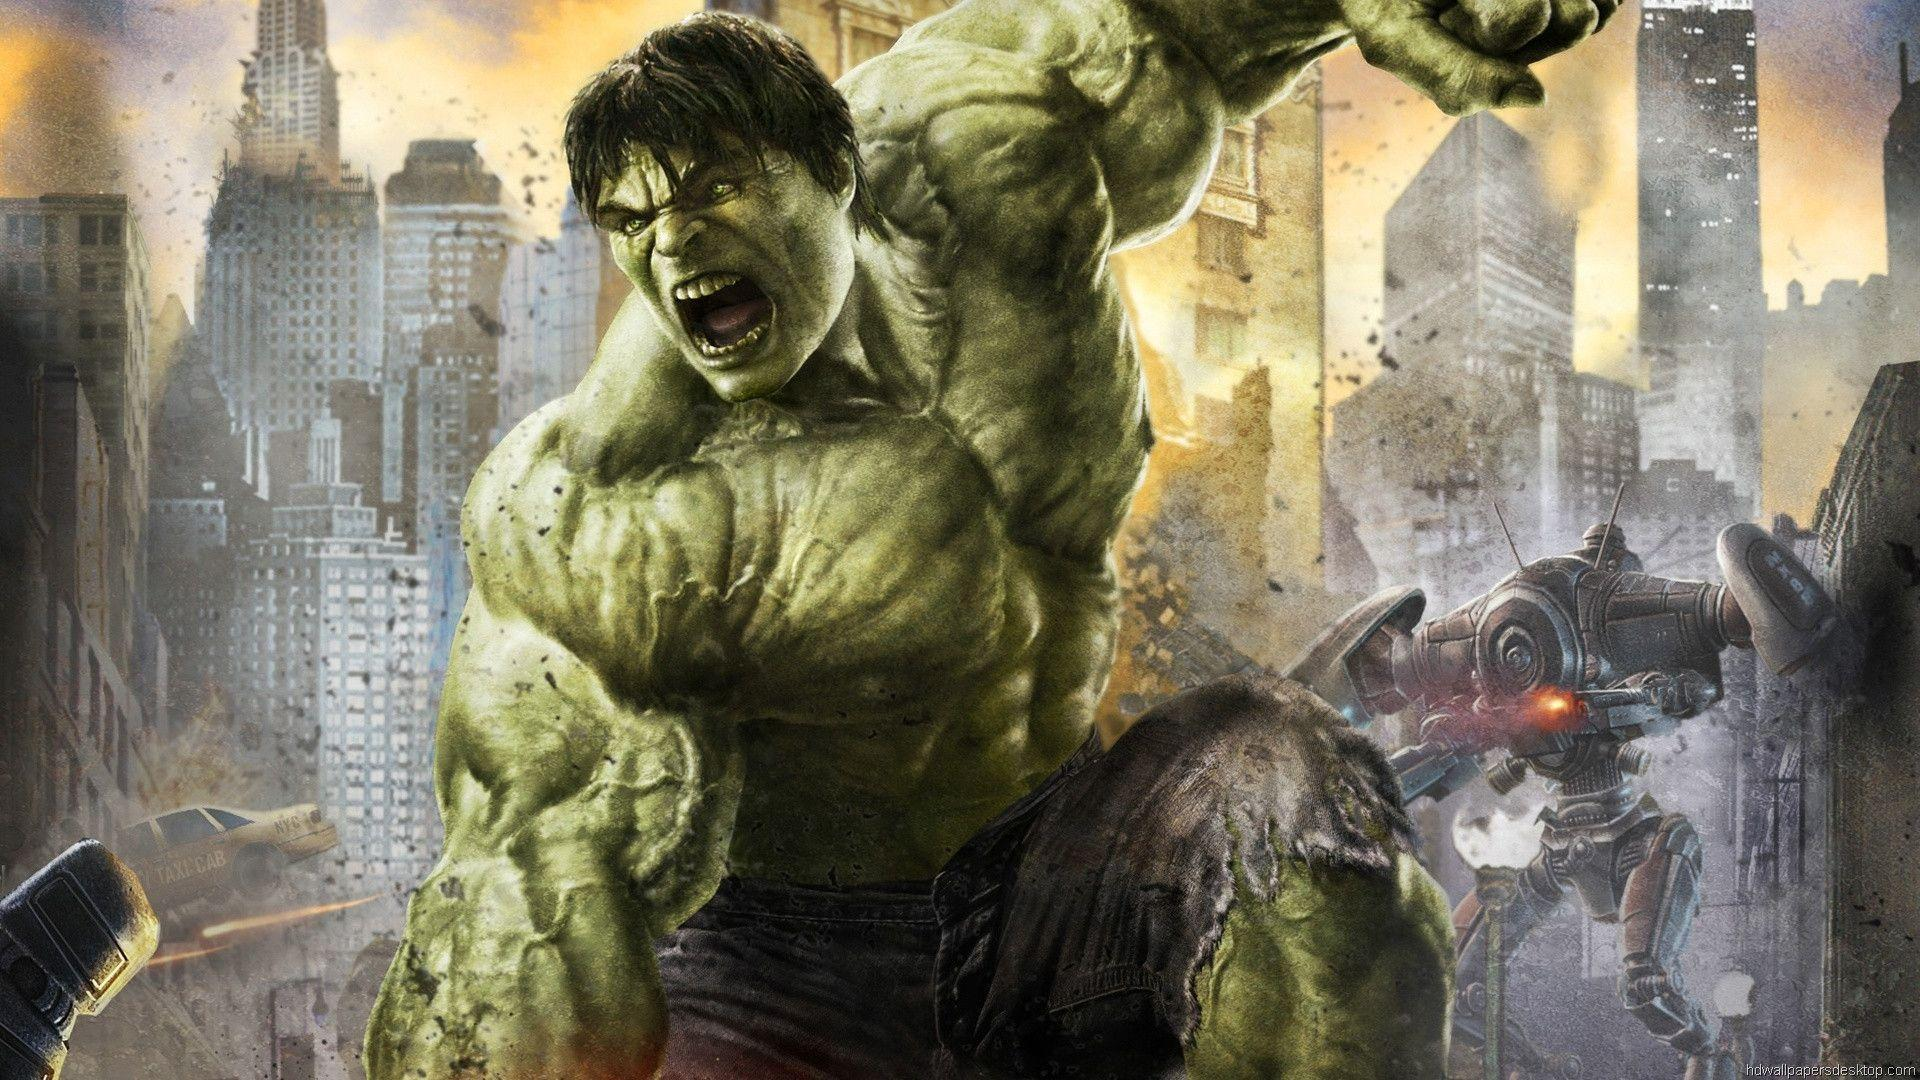 the incredible hulk full movie download in hindi